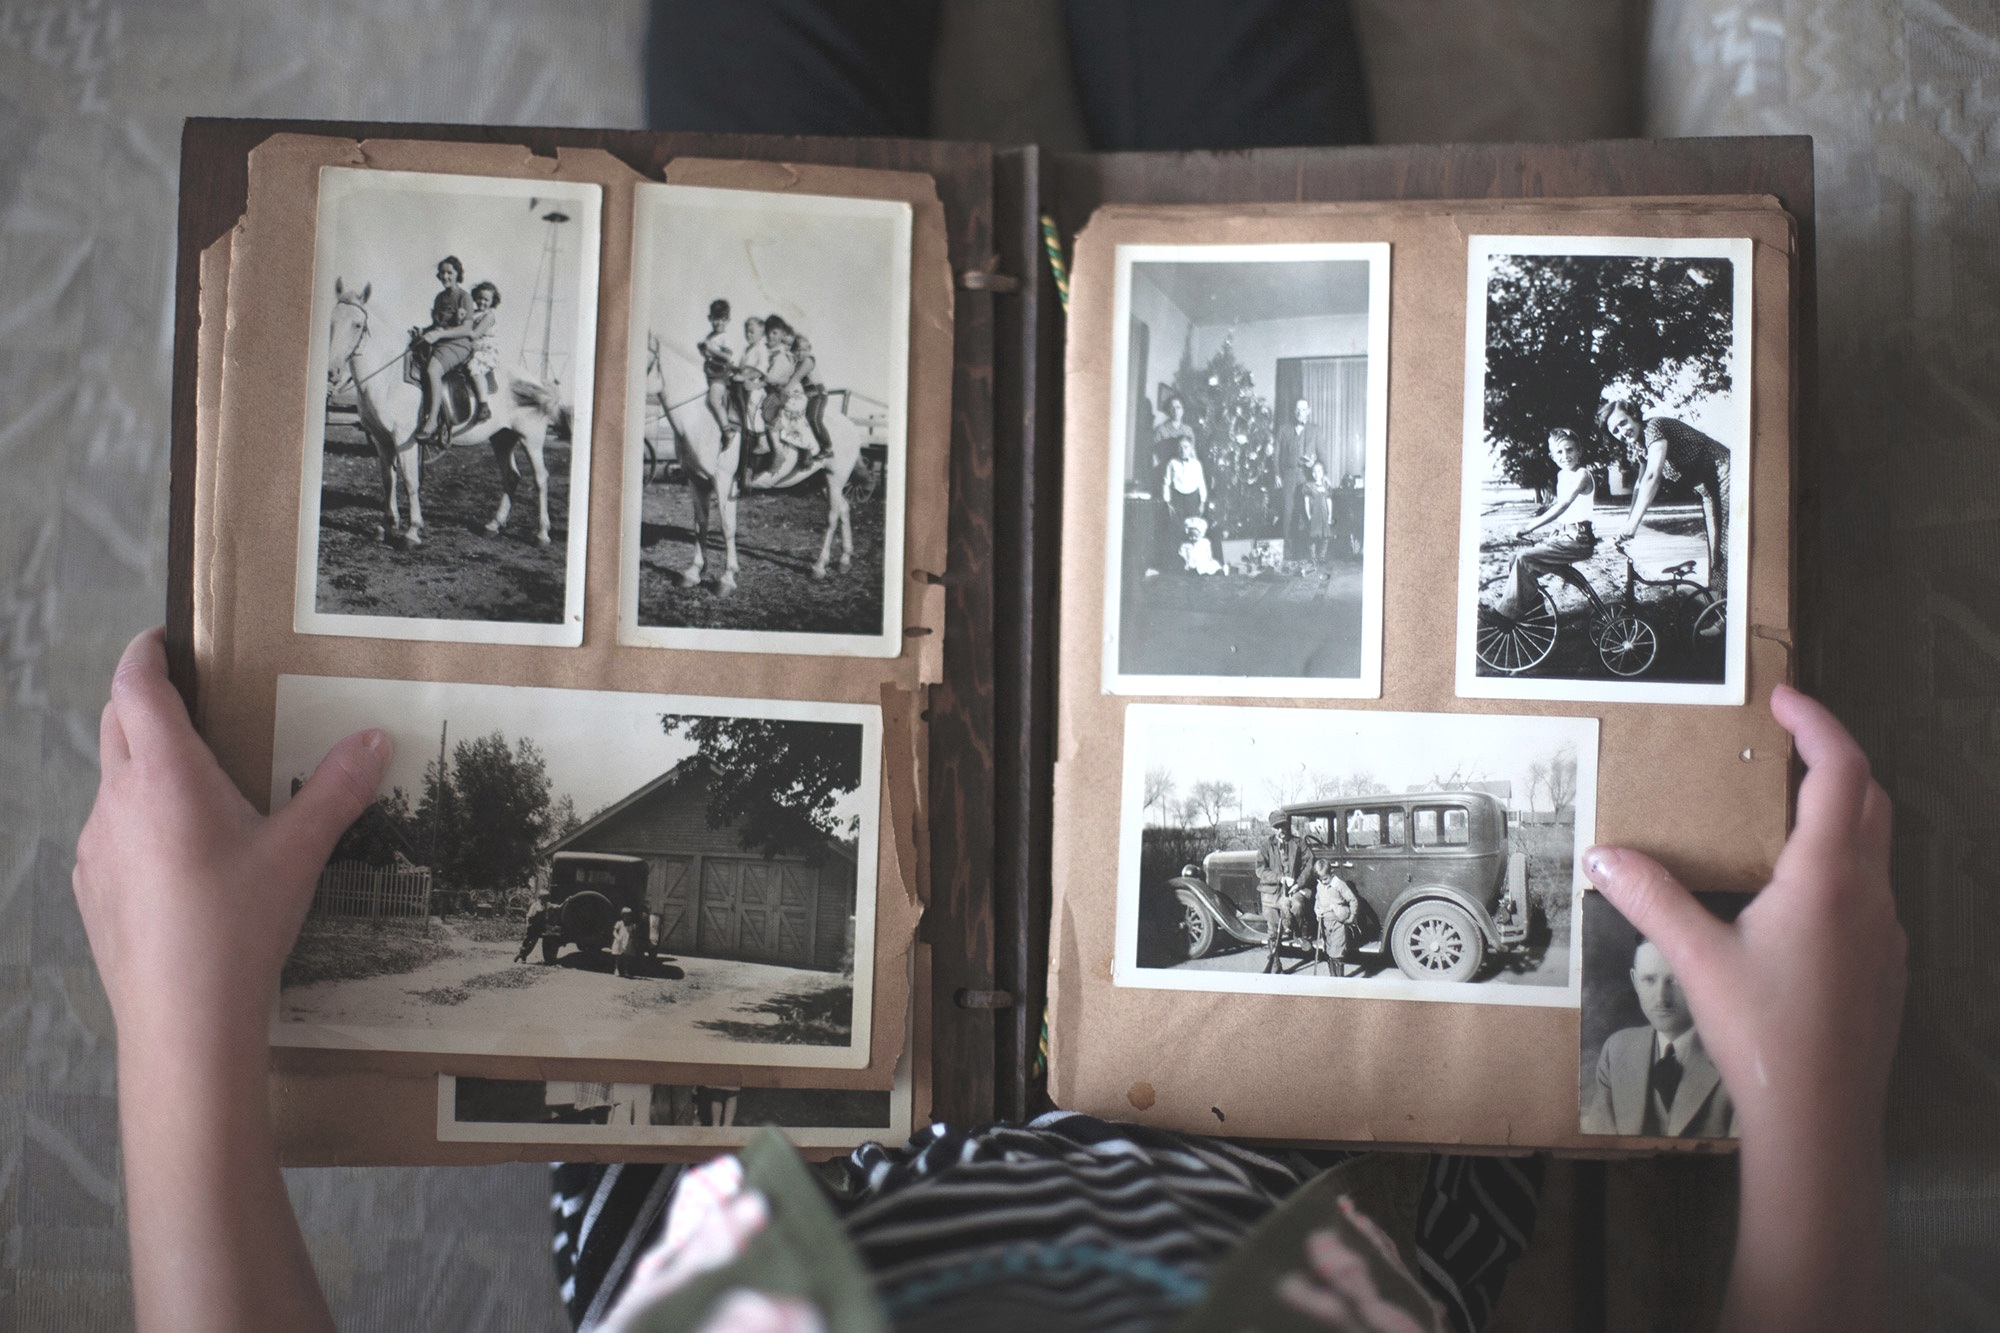 Share Your Memories - If you have any old pictures or stories you would like to share with us about Kenmore, please send them to us so we can share them with others.Share a Photo or Story